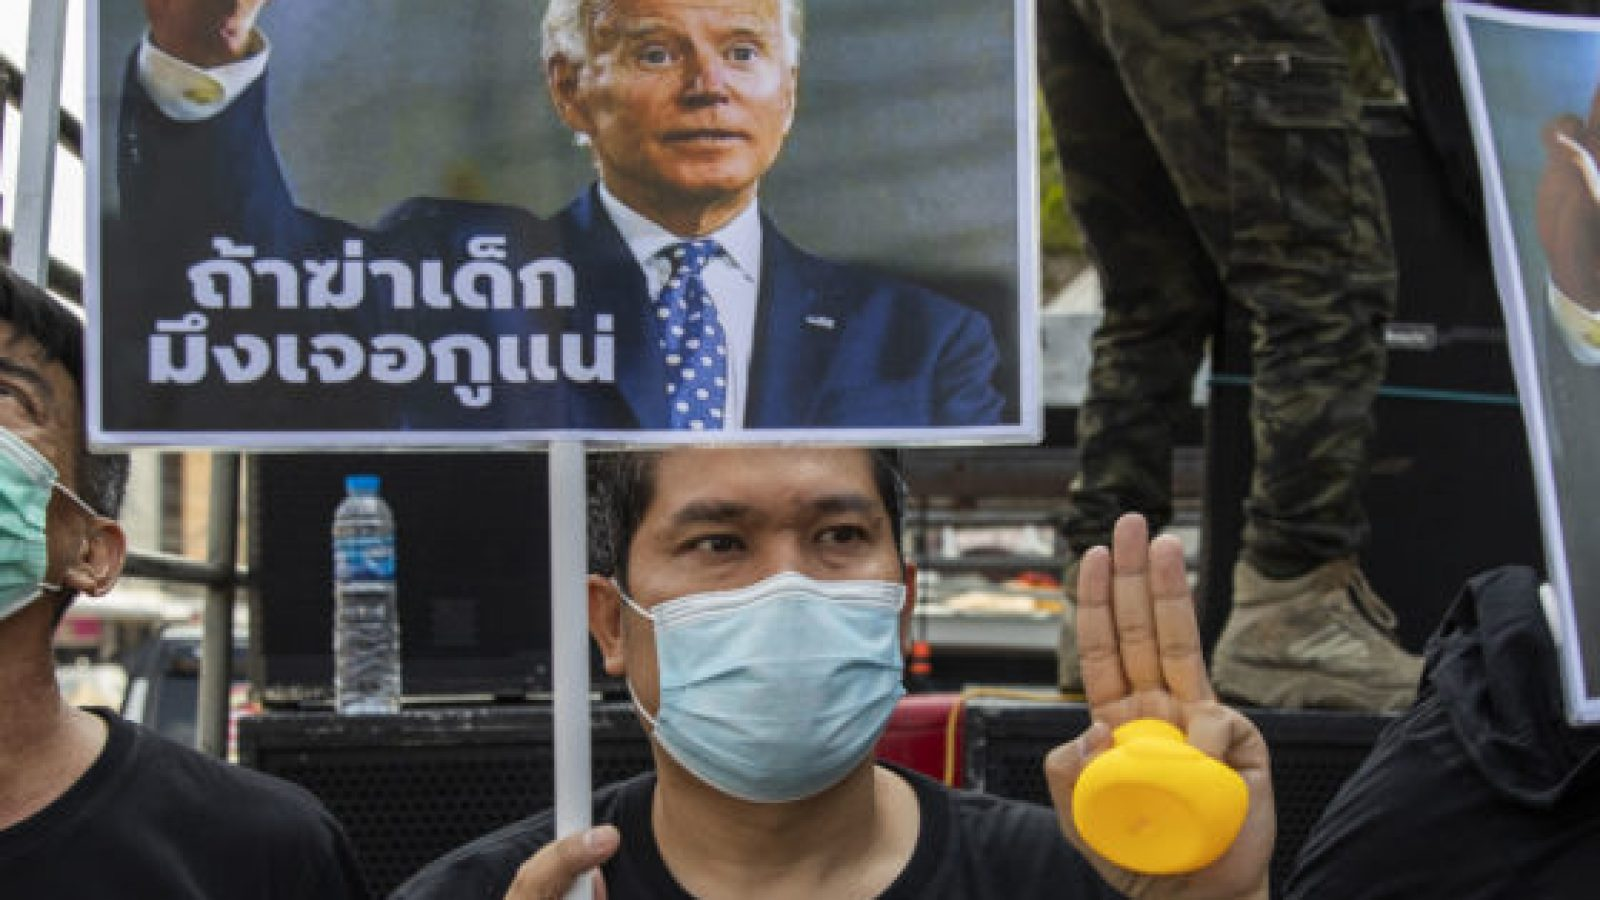 Protestors in medical masks hold posters of Joe Biden with Thai text